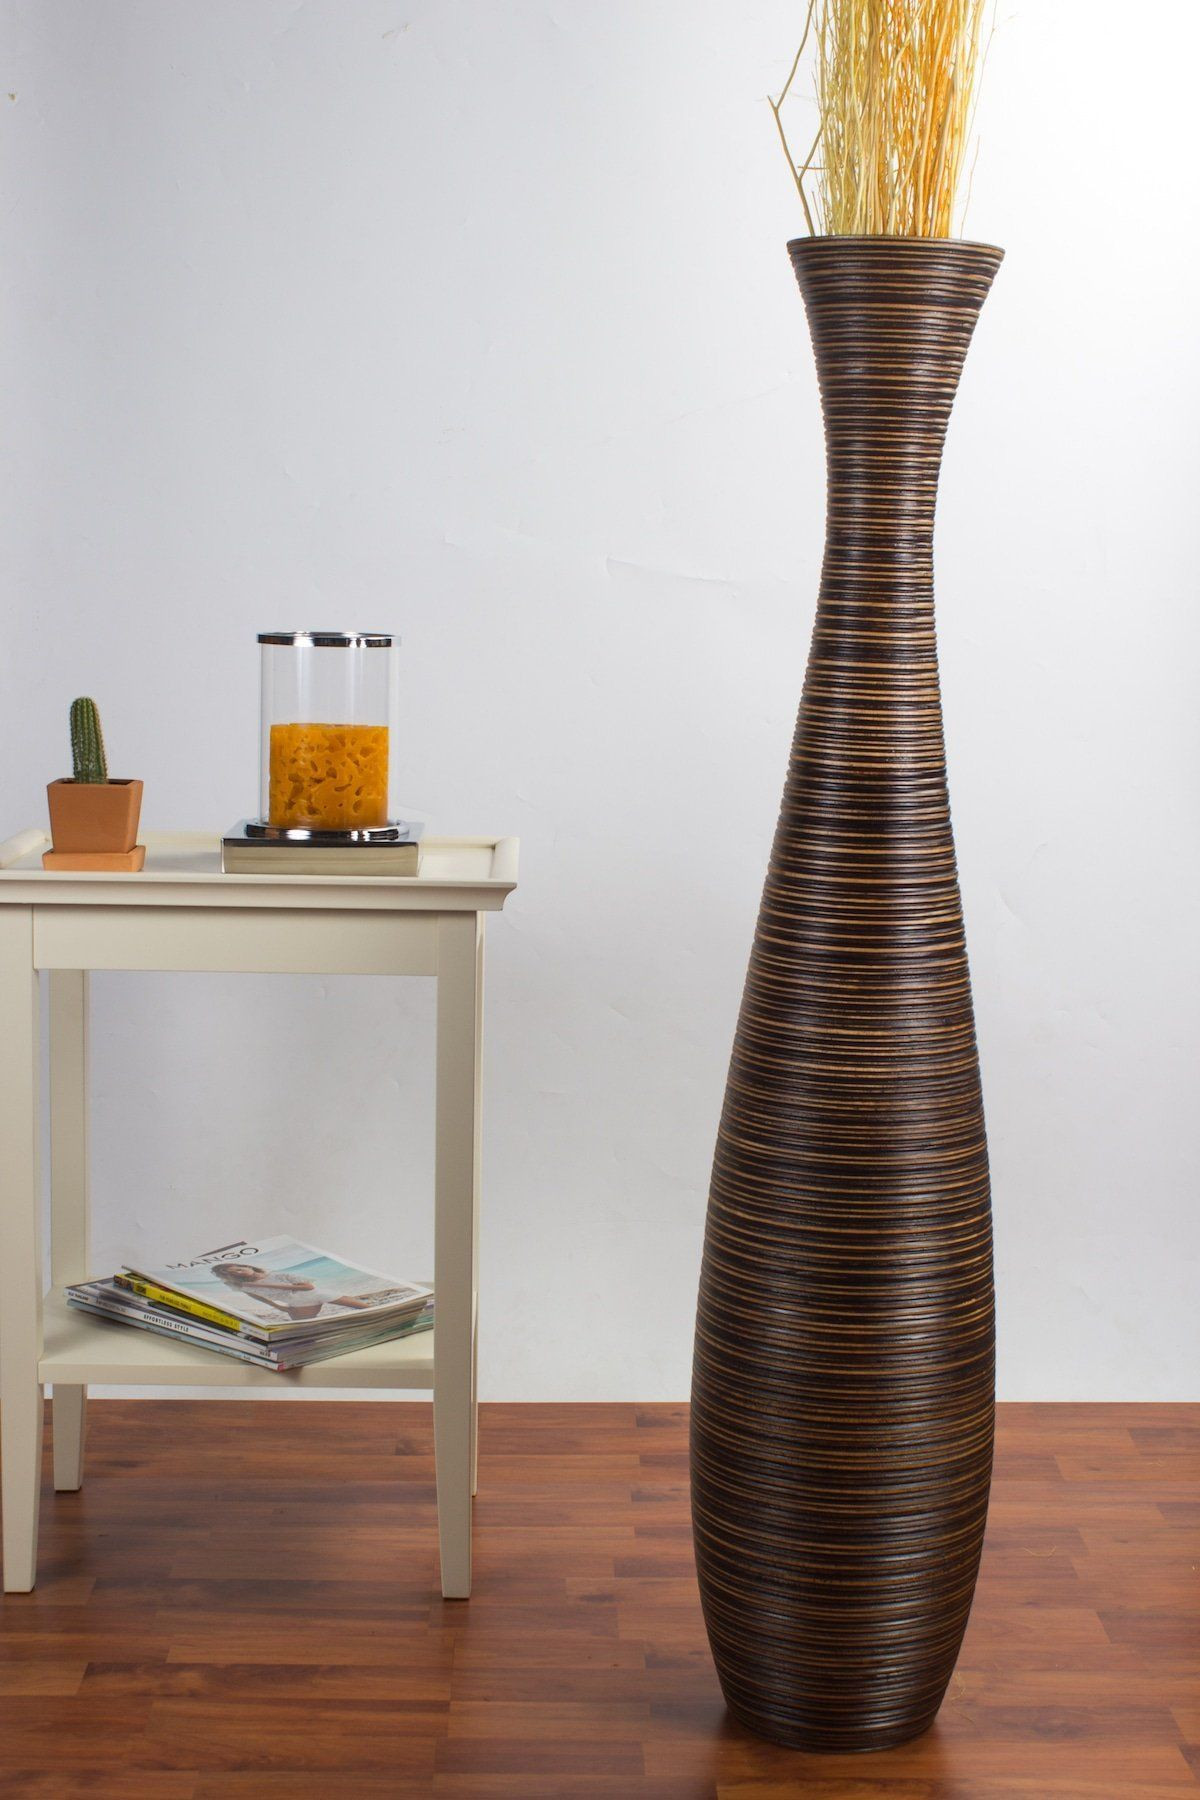 driftwood vase filler of tall vase with sticks new tall floor vase 44 inches wood brown with tall vase with sticks new tall floor vase 44 inches wood brown unique and distinguished